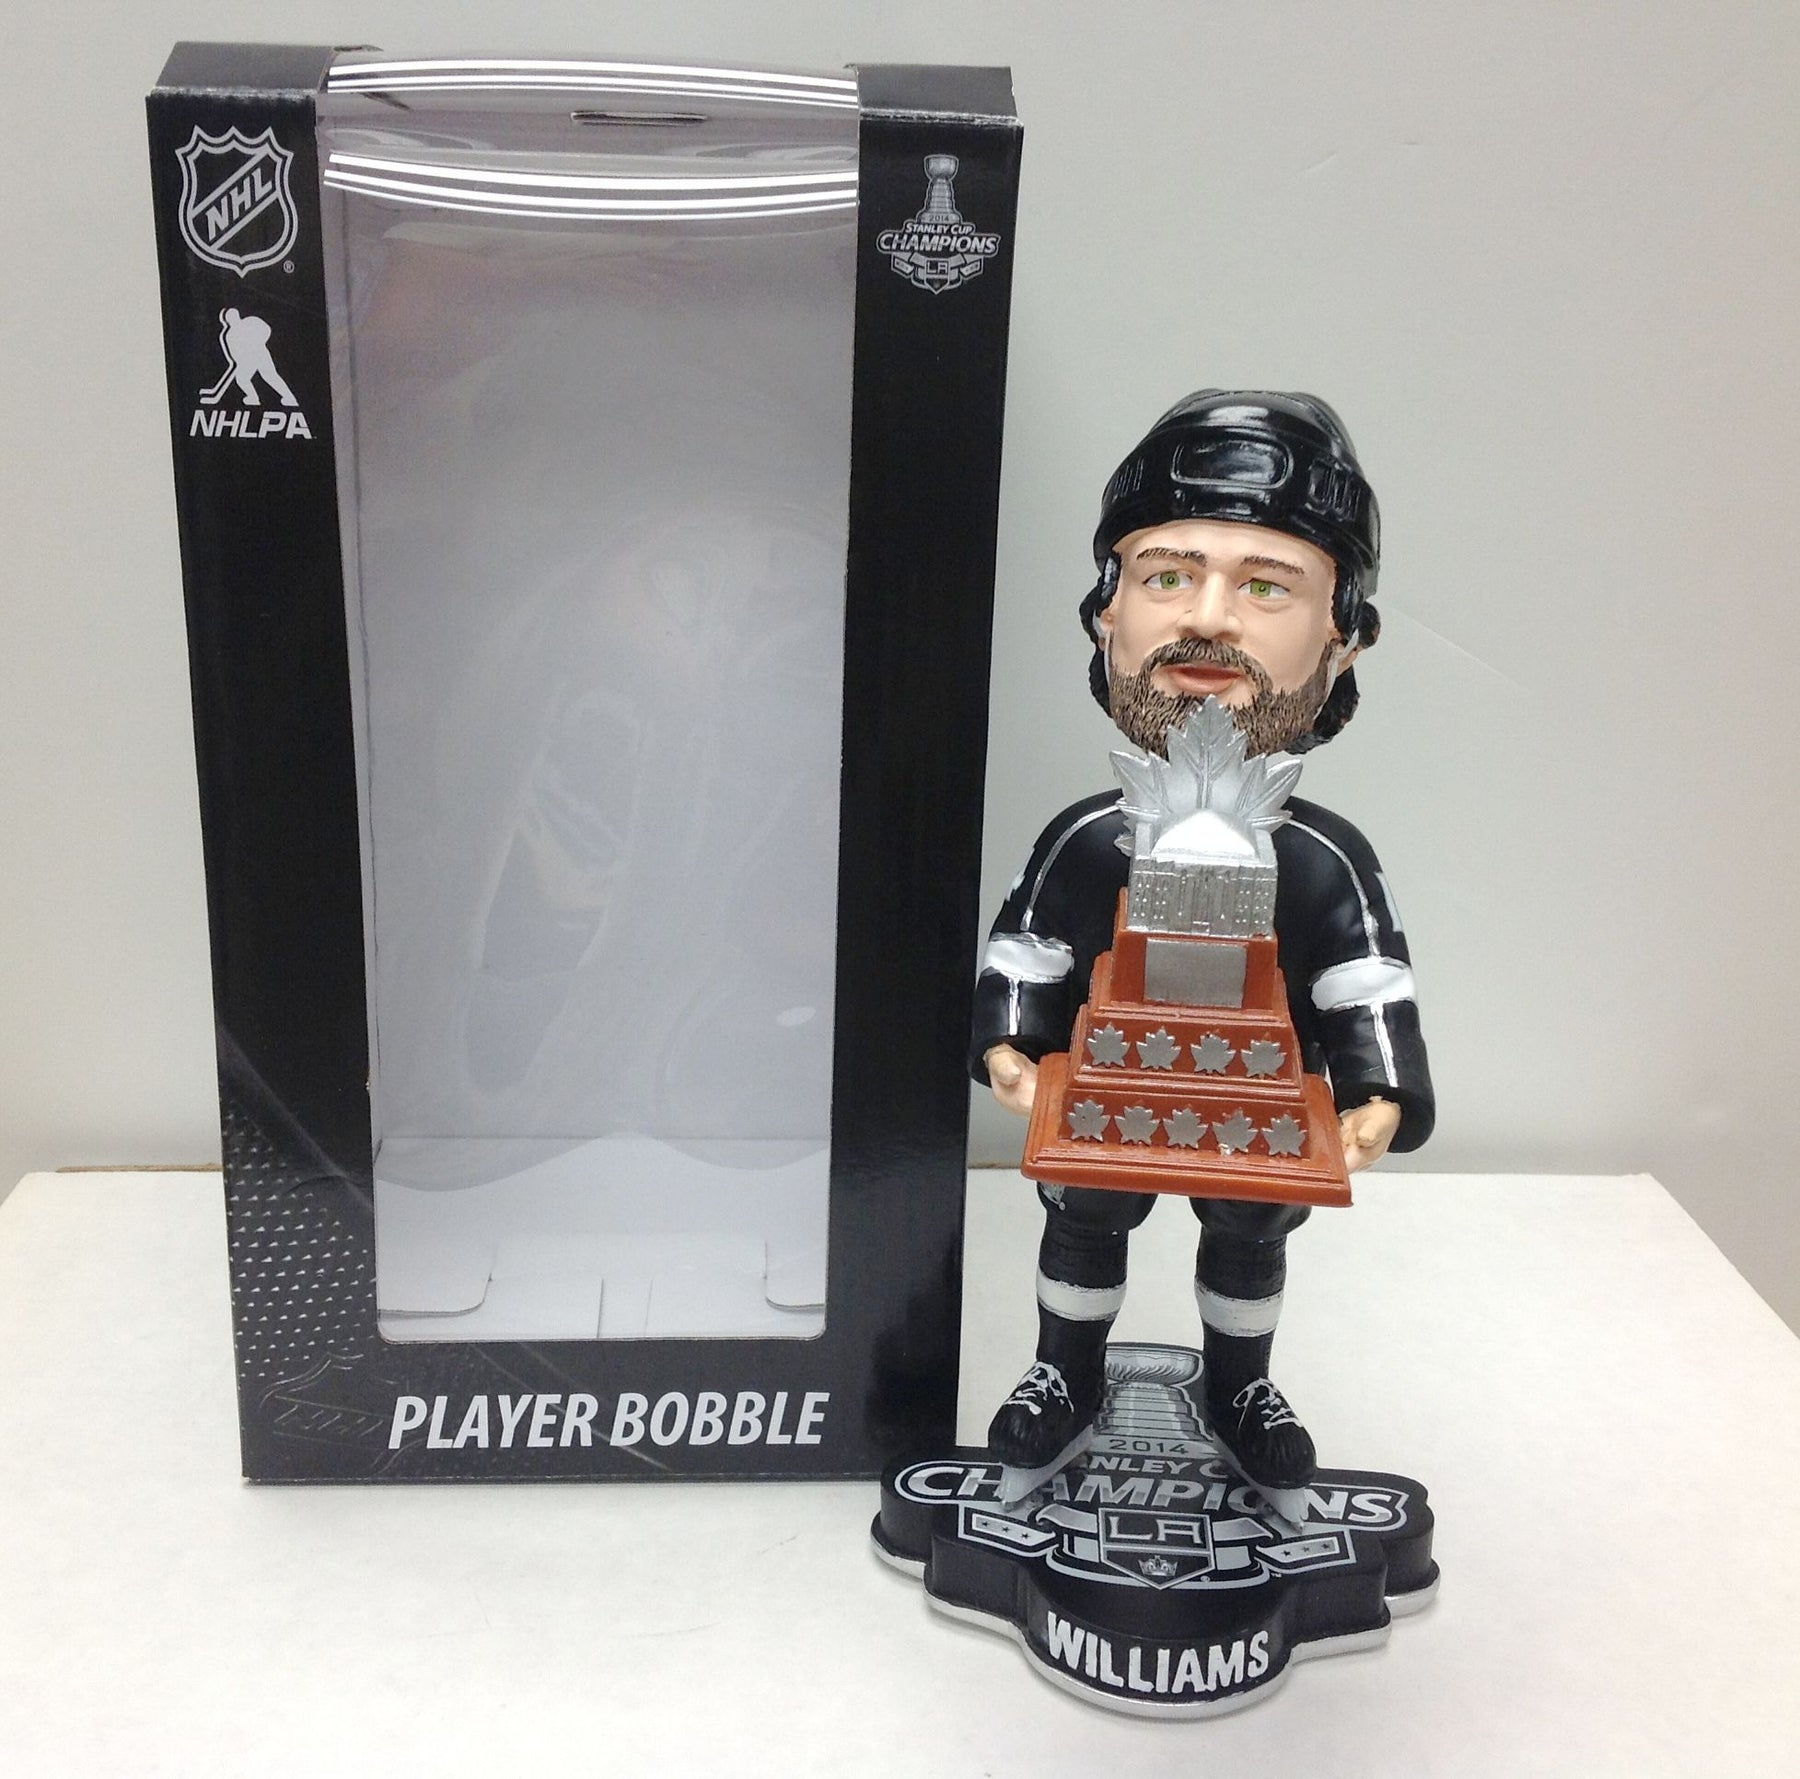 Justin Williams Bobblehead Conn Smythe - BobblesGalore